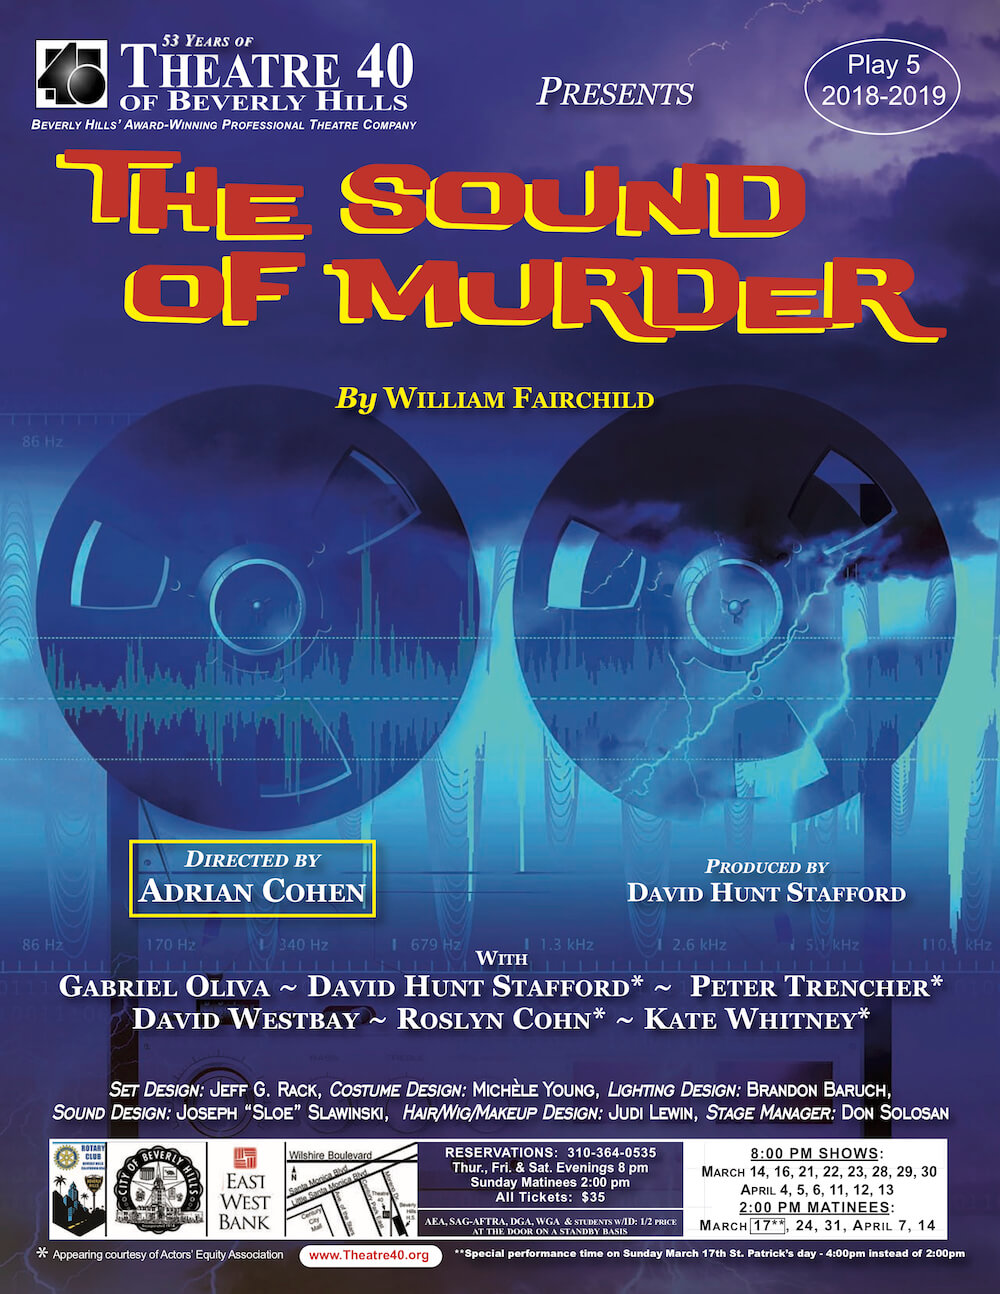 The Sound of Murder at Theatre 40